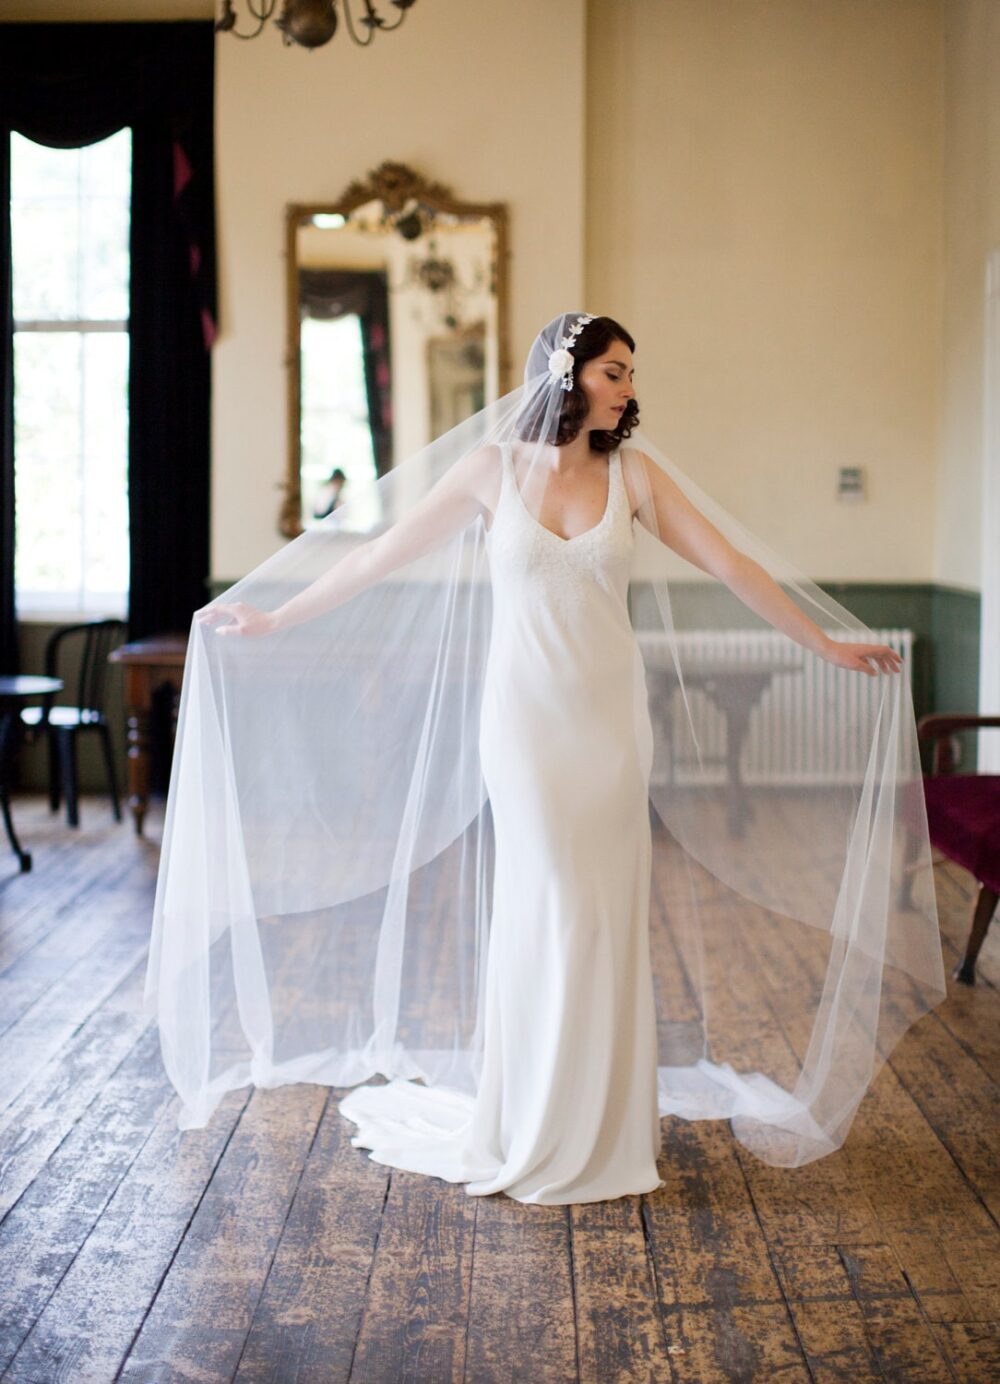 Cathedral Length Wedding Veil in Ivory Tulle - Juliet Cap Style 1930S Art Deco